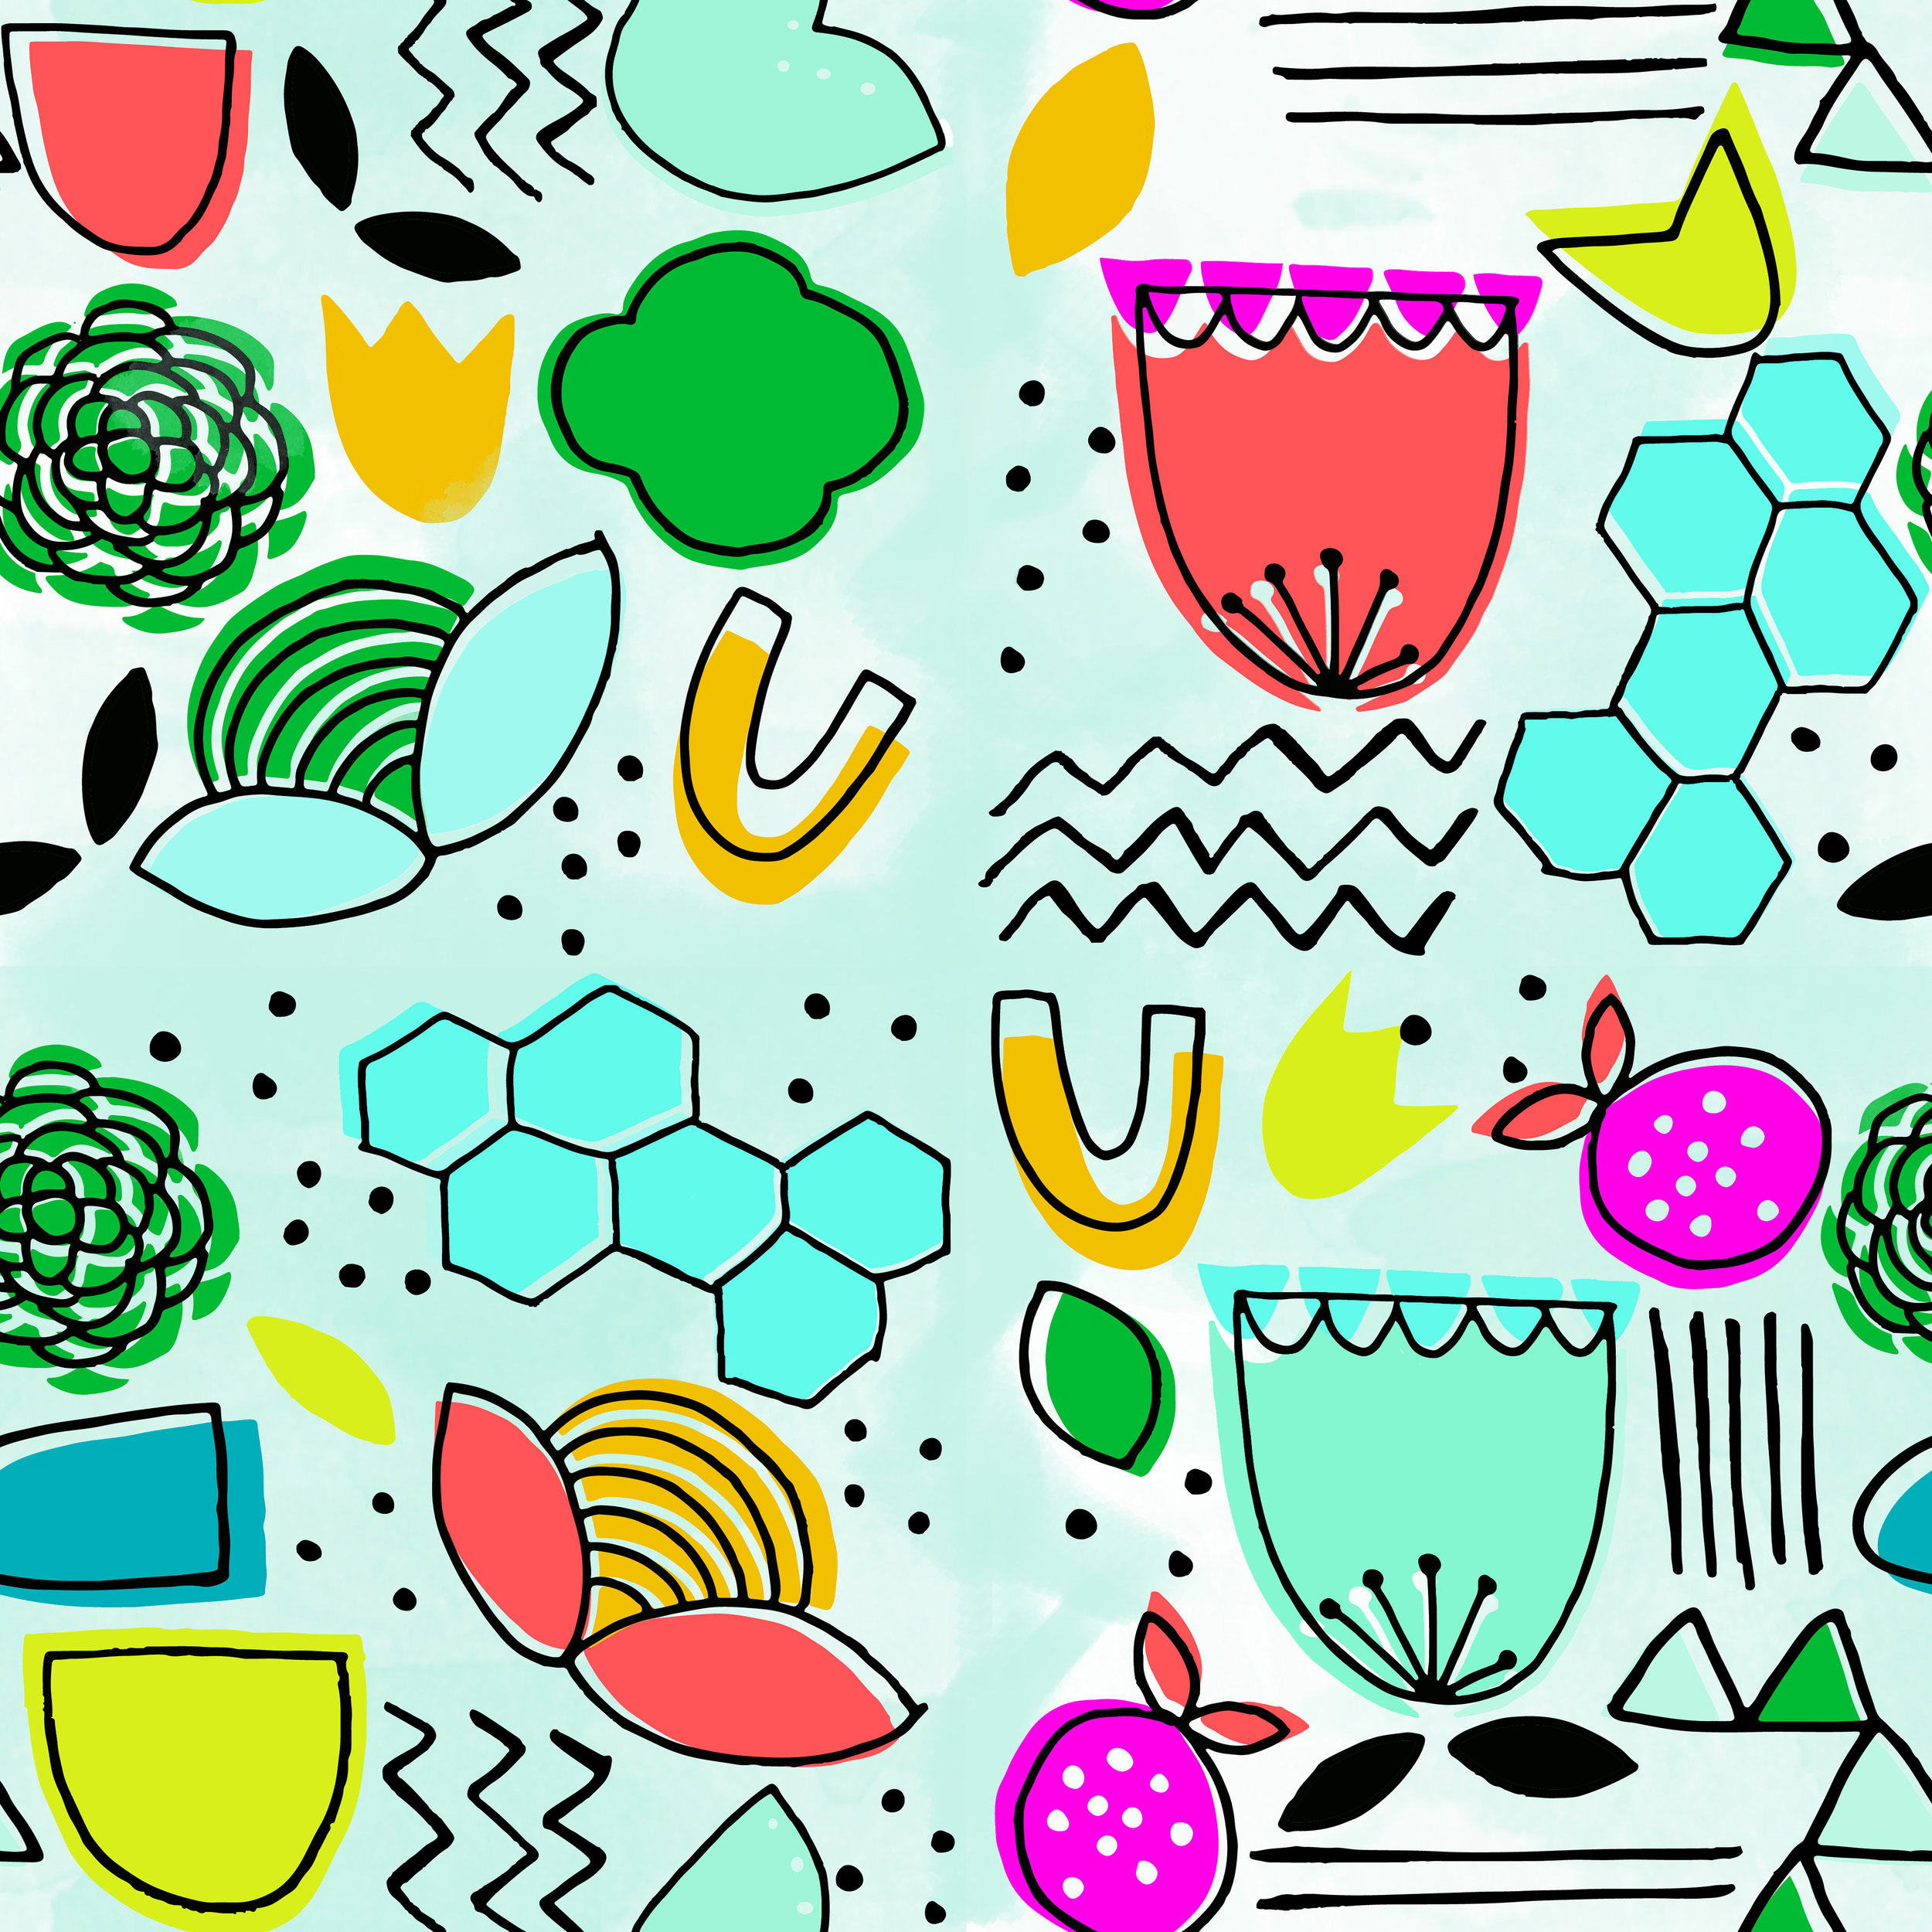 funky fresh floral | surface design by Allie Tate